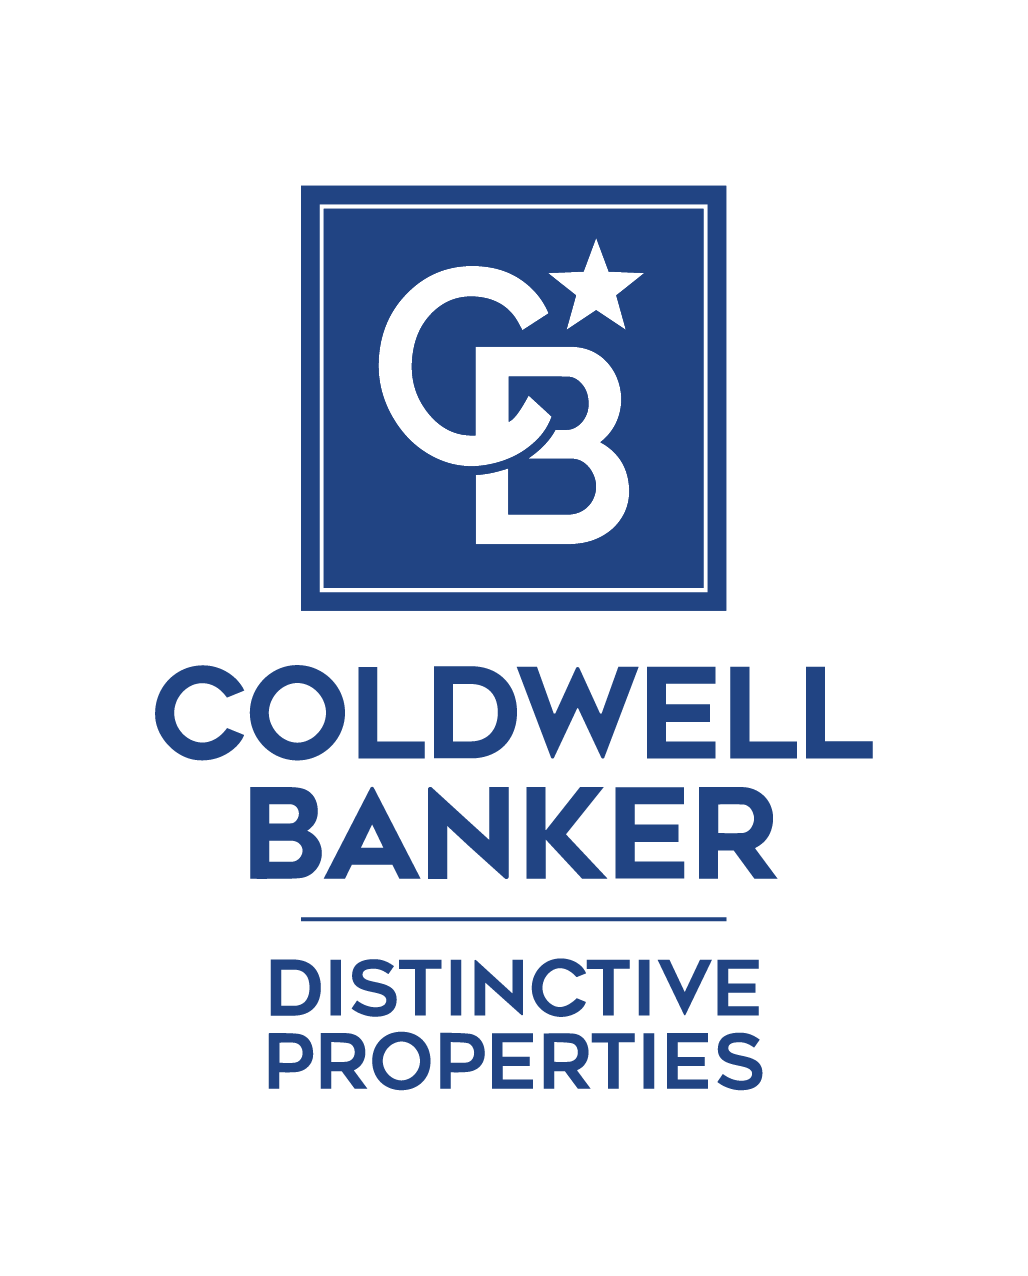 Stephen Deadwyler - Coldwell Banker Distinctive Properties Logo